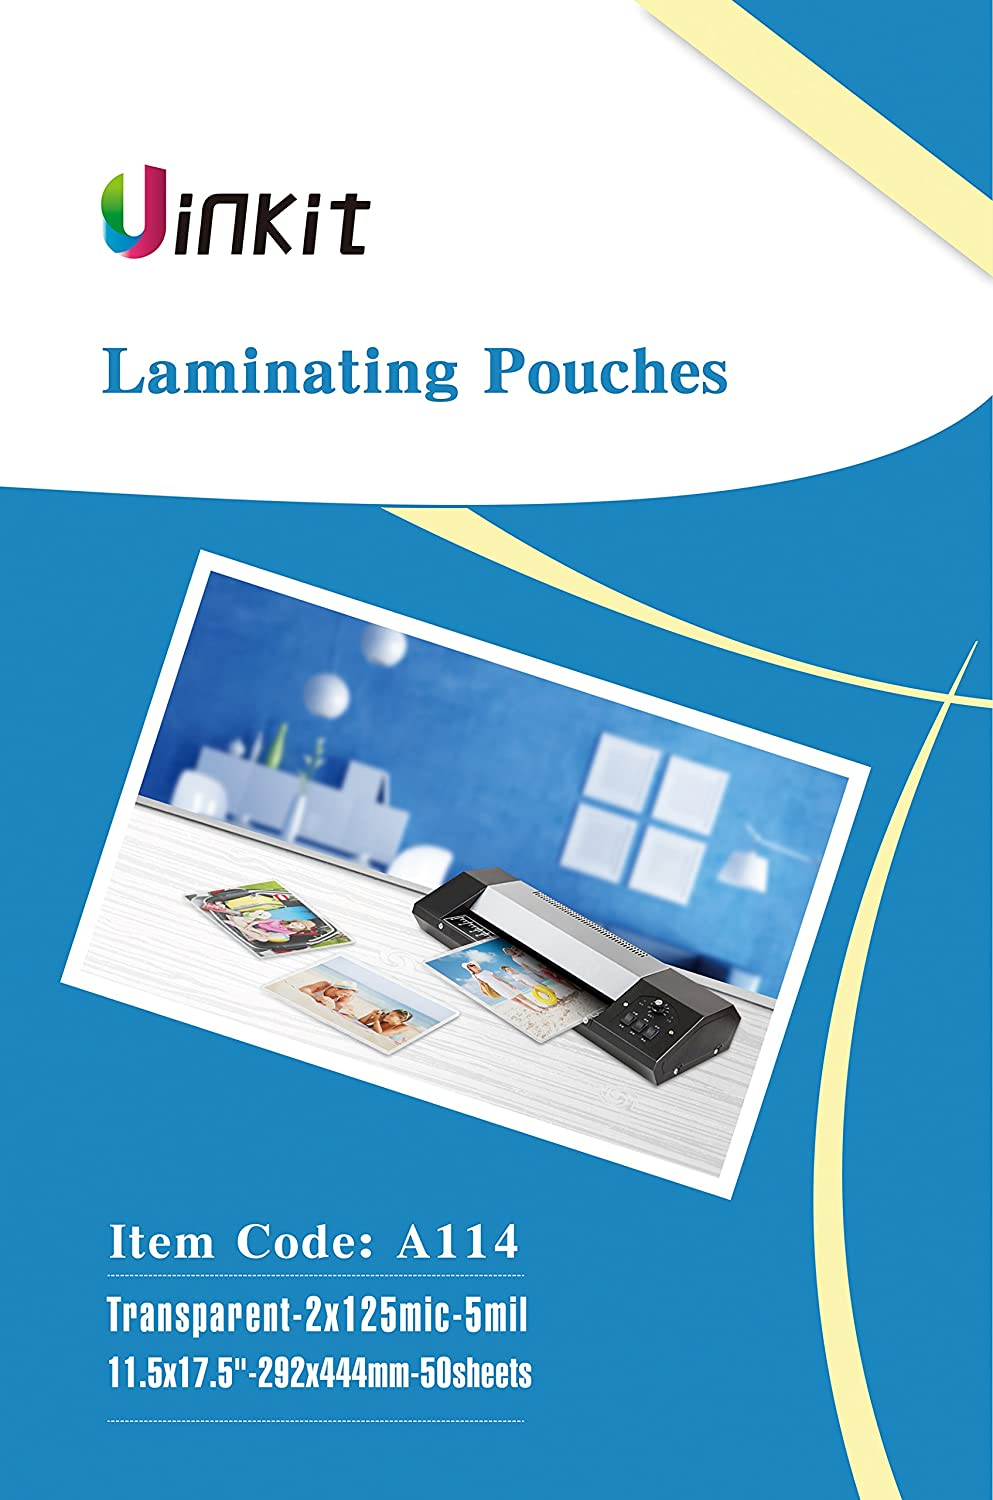 Hot Thermal Laminating Pouches 5Mil - 9x11.5 Inches for sealed 8.5x11 Photo - 100 Sheets 9x11.5 inches Pack , Uinkit 24 hours service , 3 years warranty